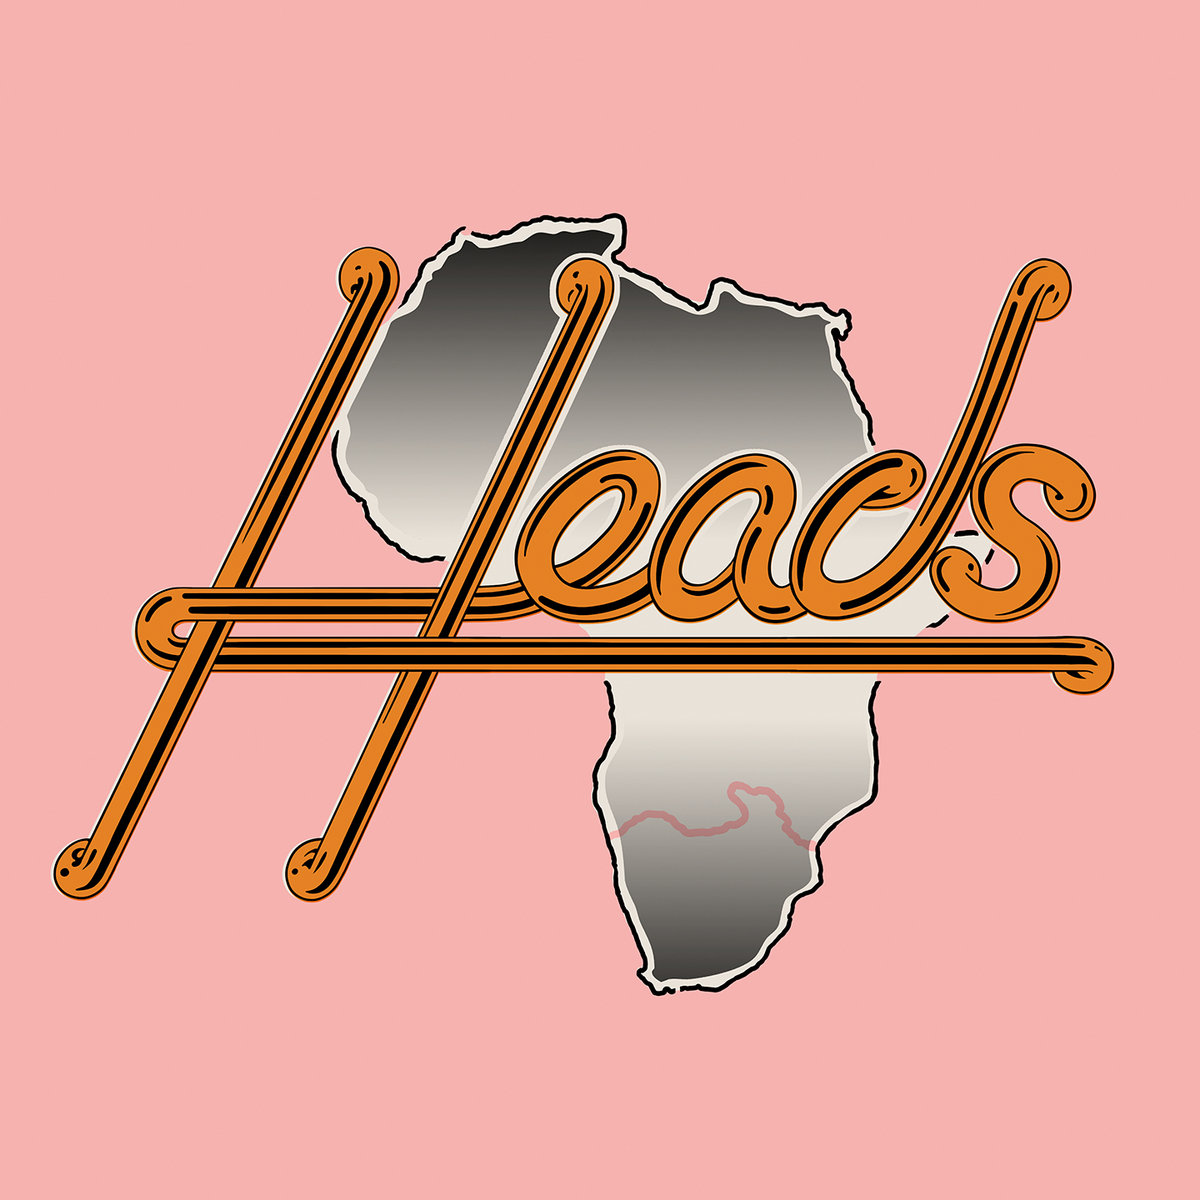 Heads Records - South African Disco-Dub Edits | Soundway Records